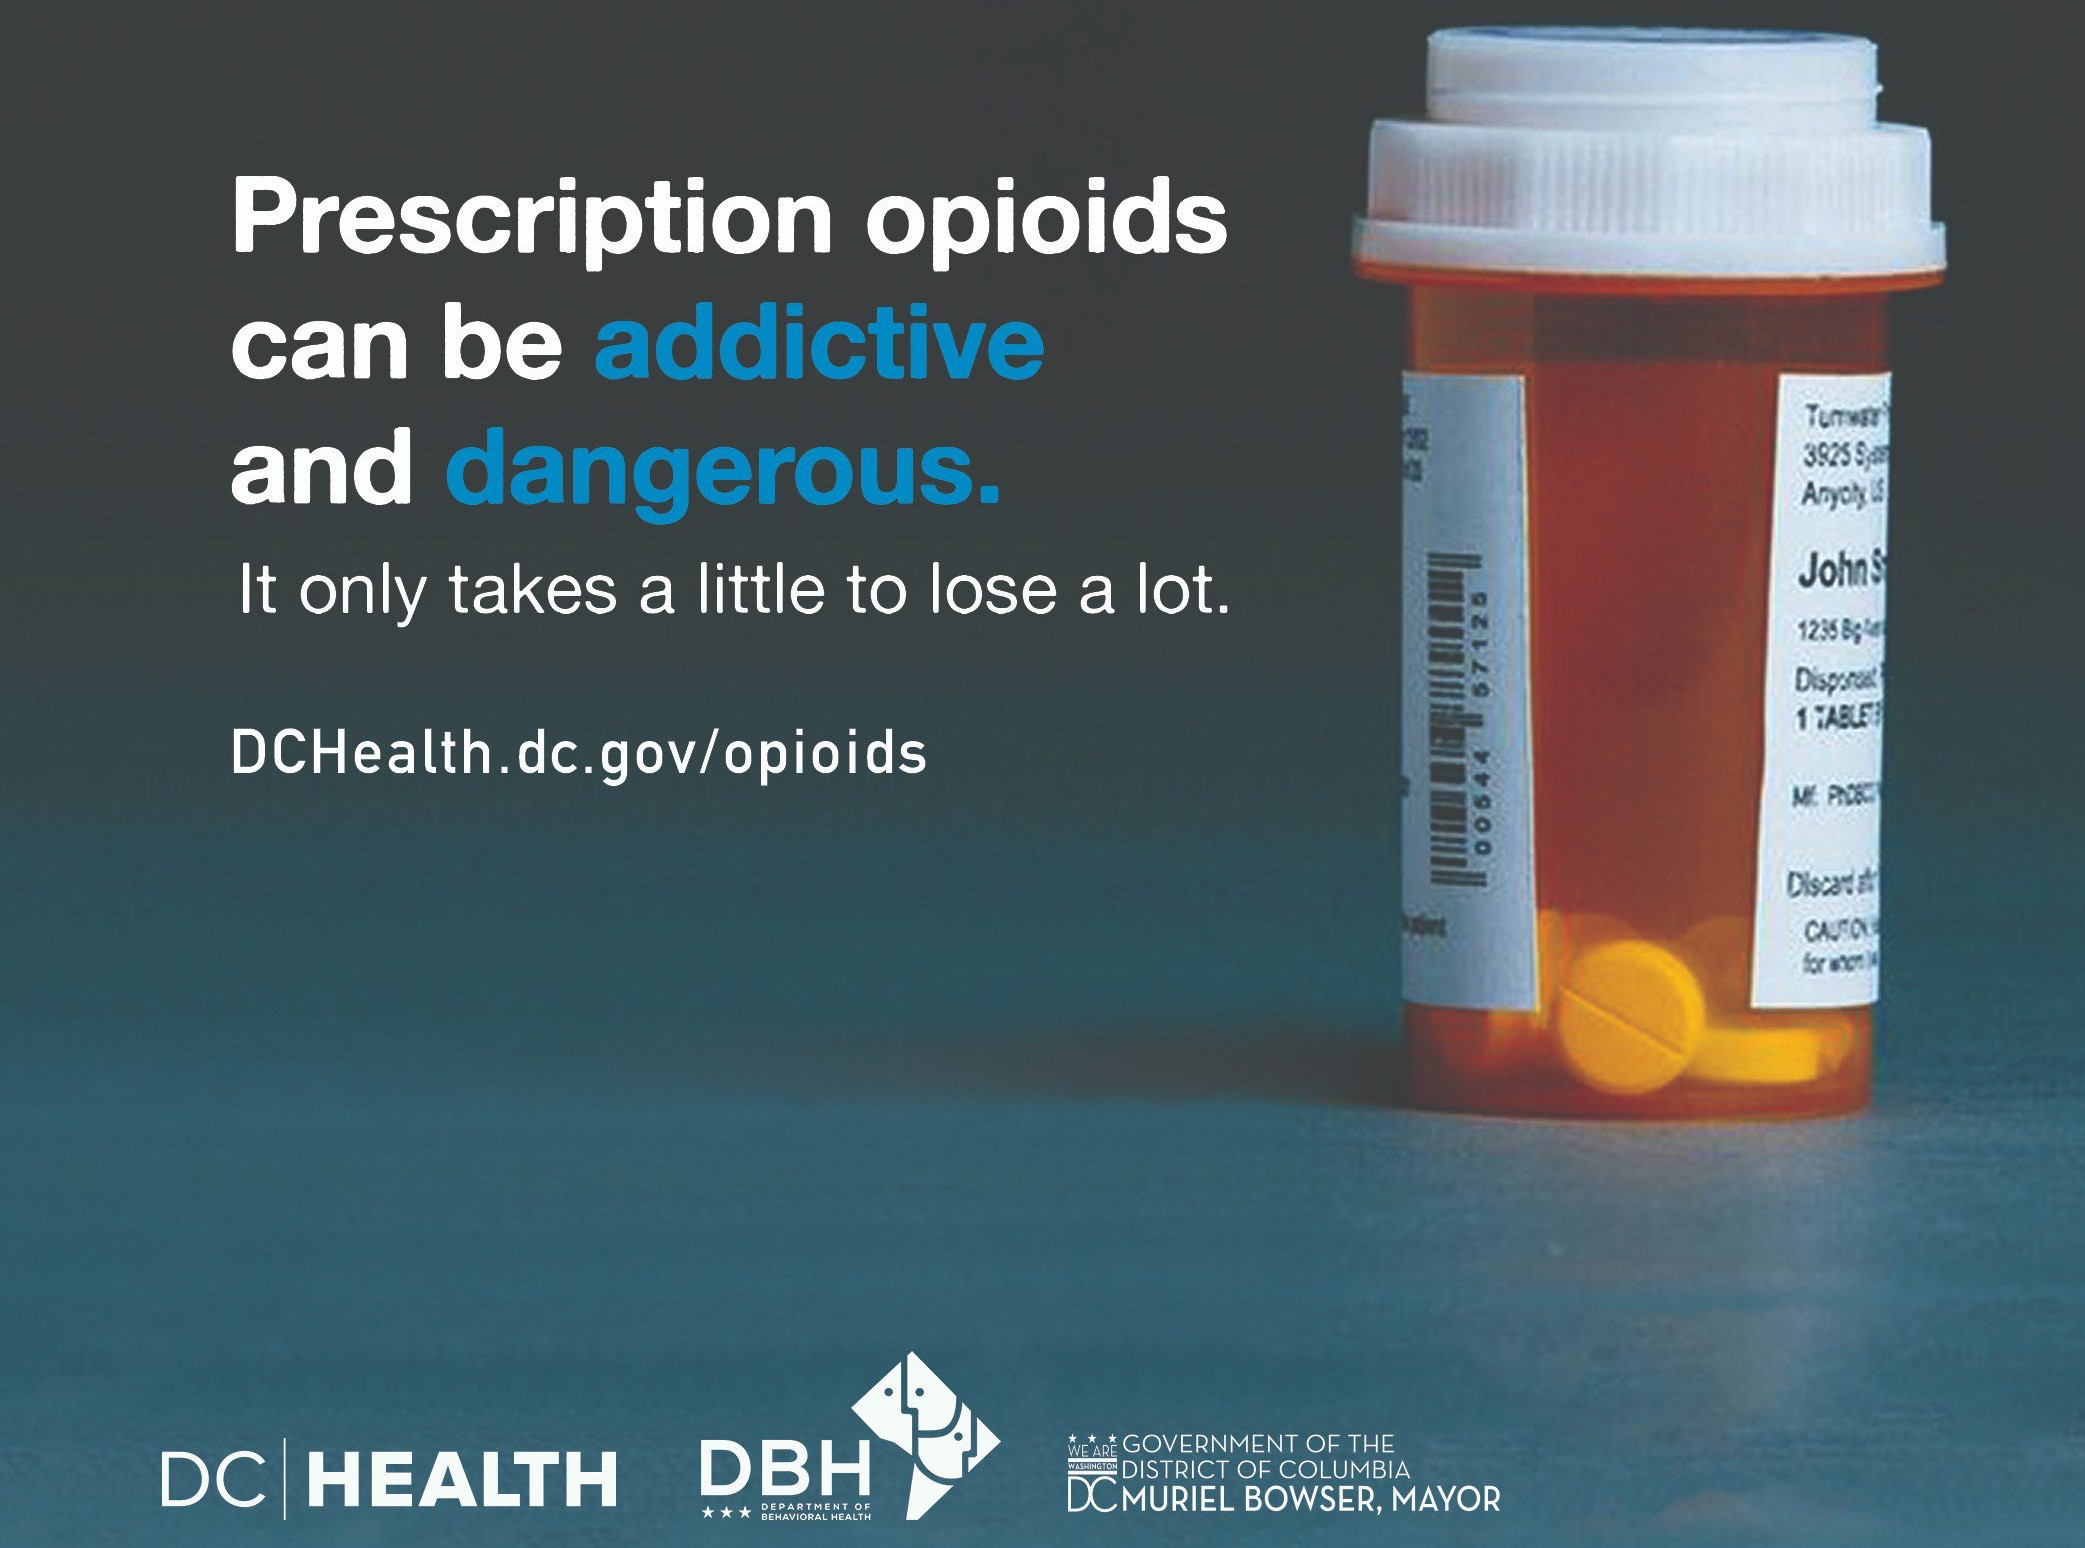 A prescription pill bottle and words prescription opioids can be addictive and dangerous. It only takes a little to lose a lot.